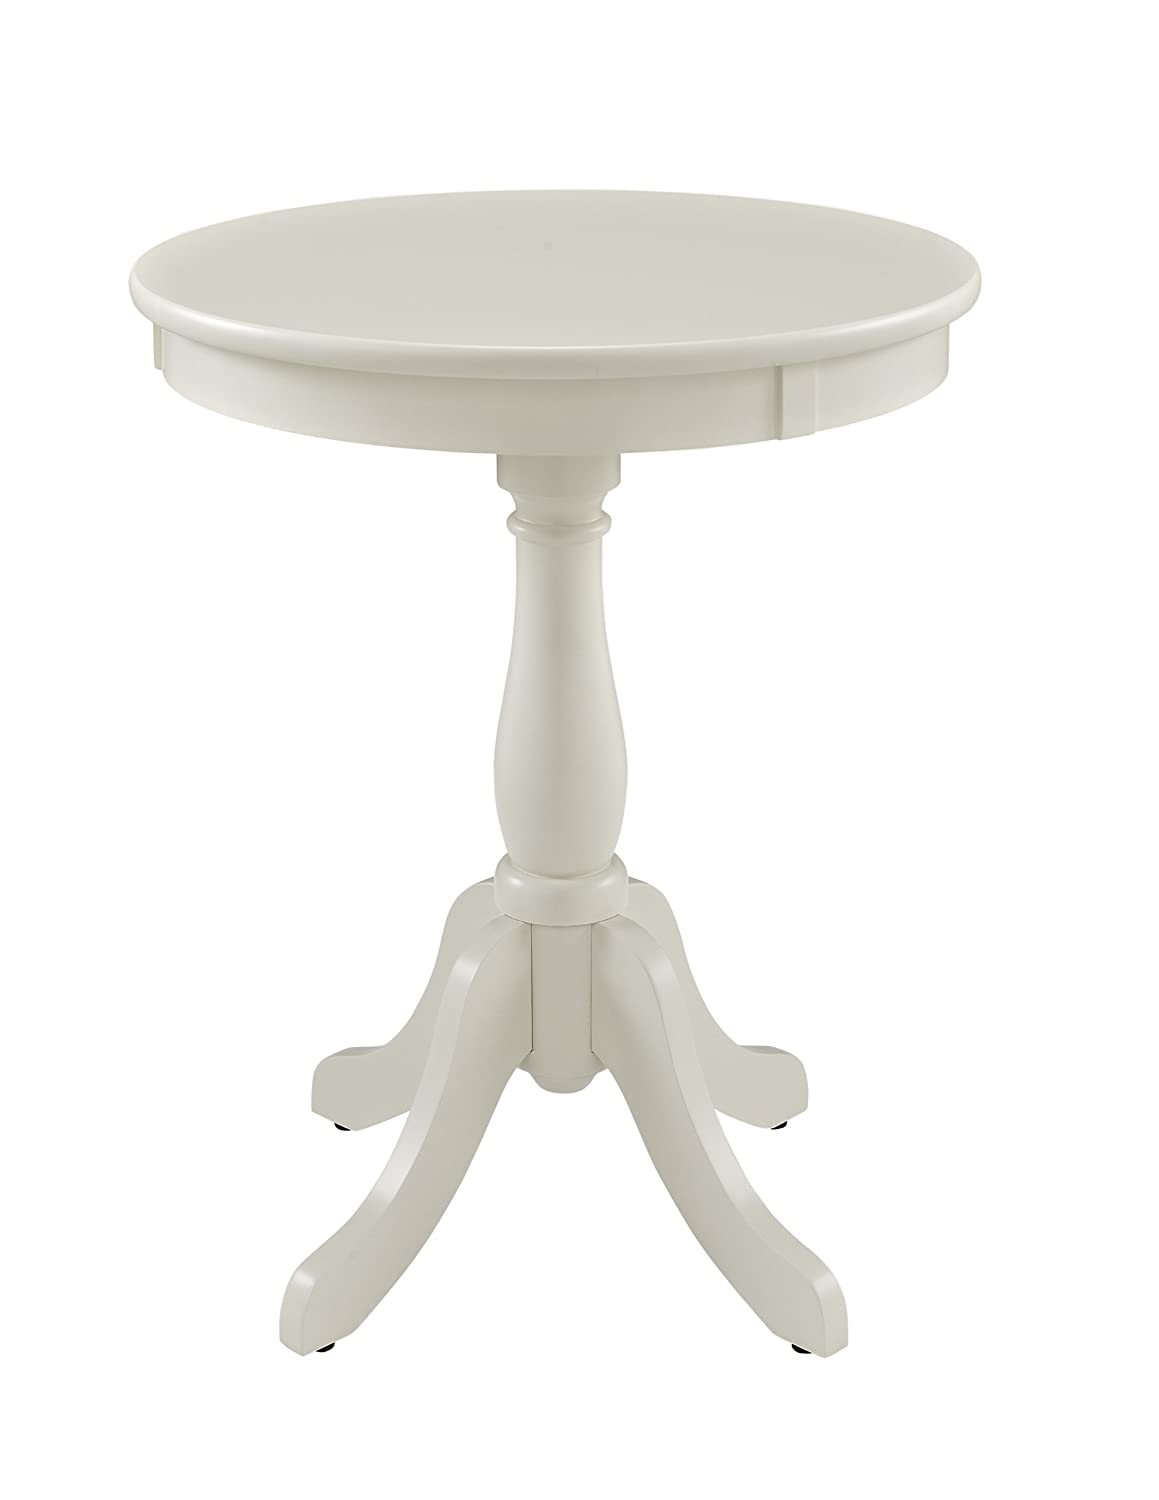 Powell Furniture 929-711 Powell Round Accent, White Table Multicolor